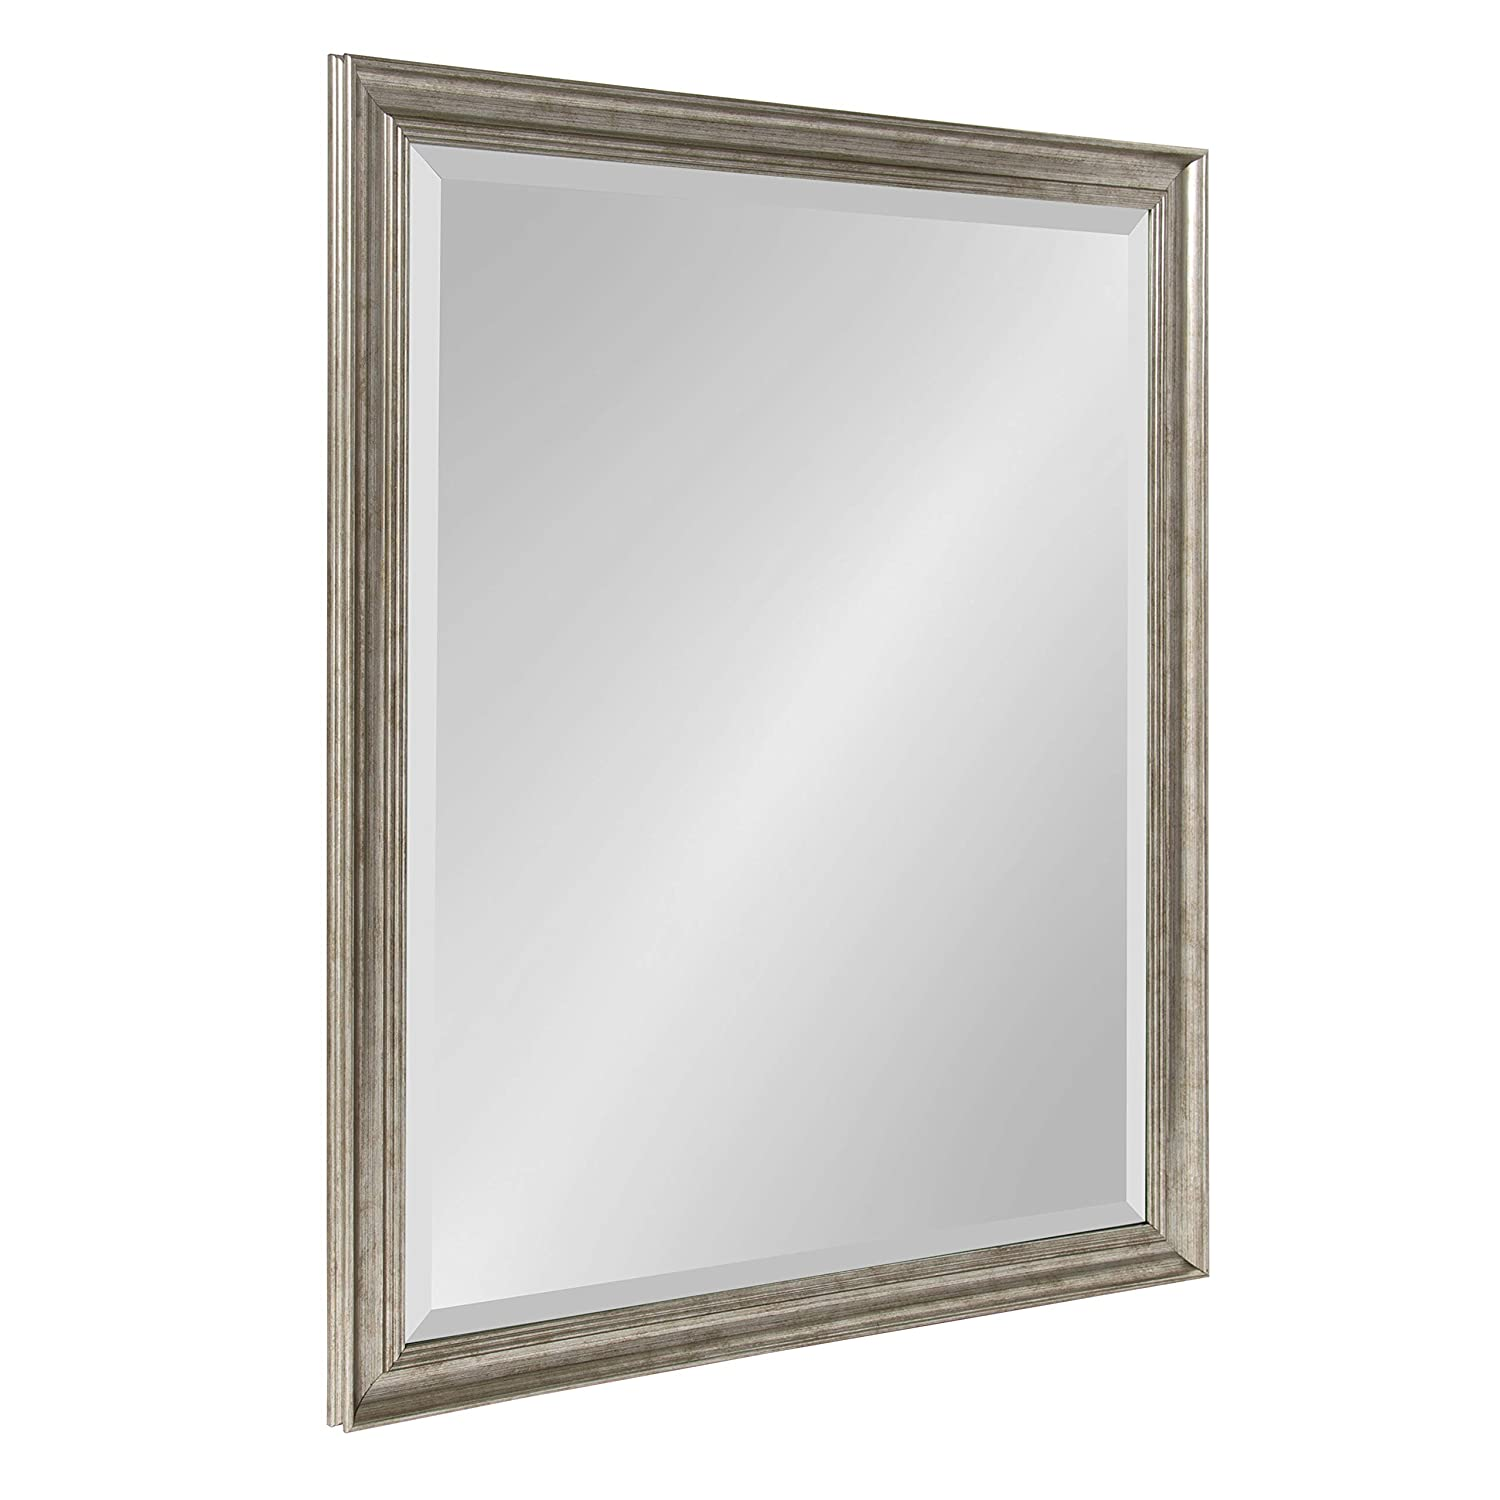 Mirrorize.ca Mirror with Brown Wash Frame and Orange Knobs, 37-Inch by 29-Inch Inner Mirror 28-Inch by 20-Inch